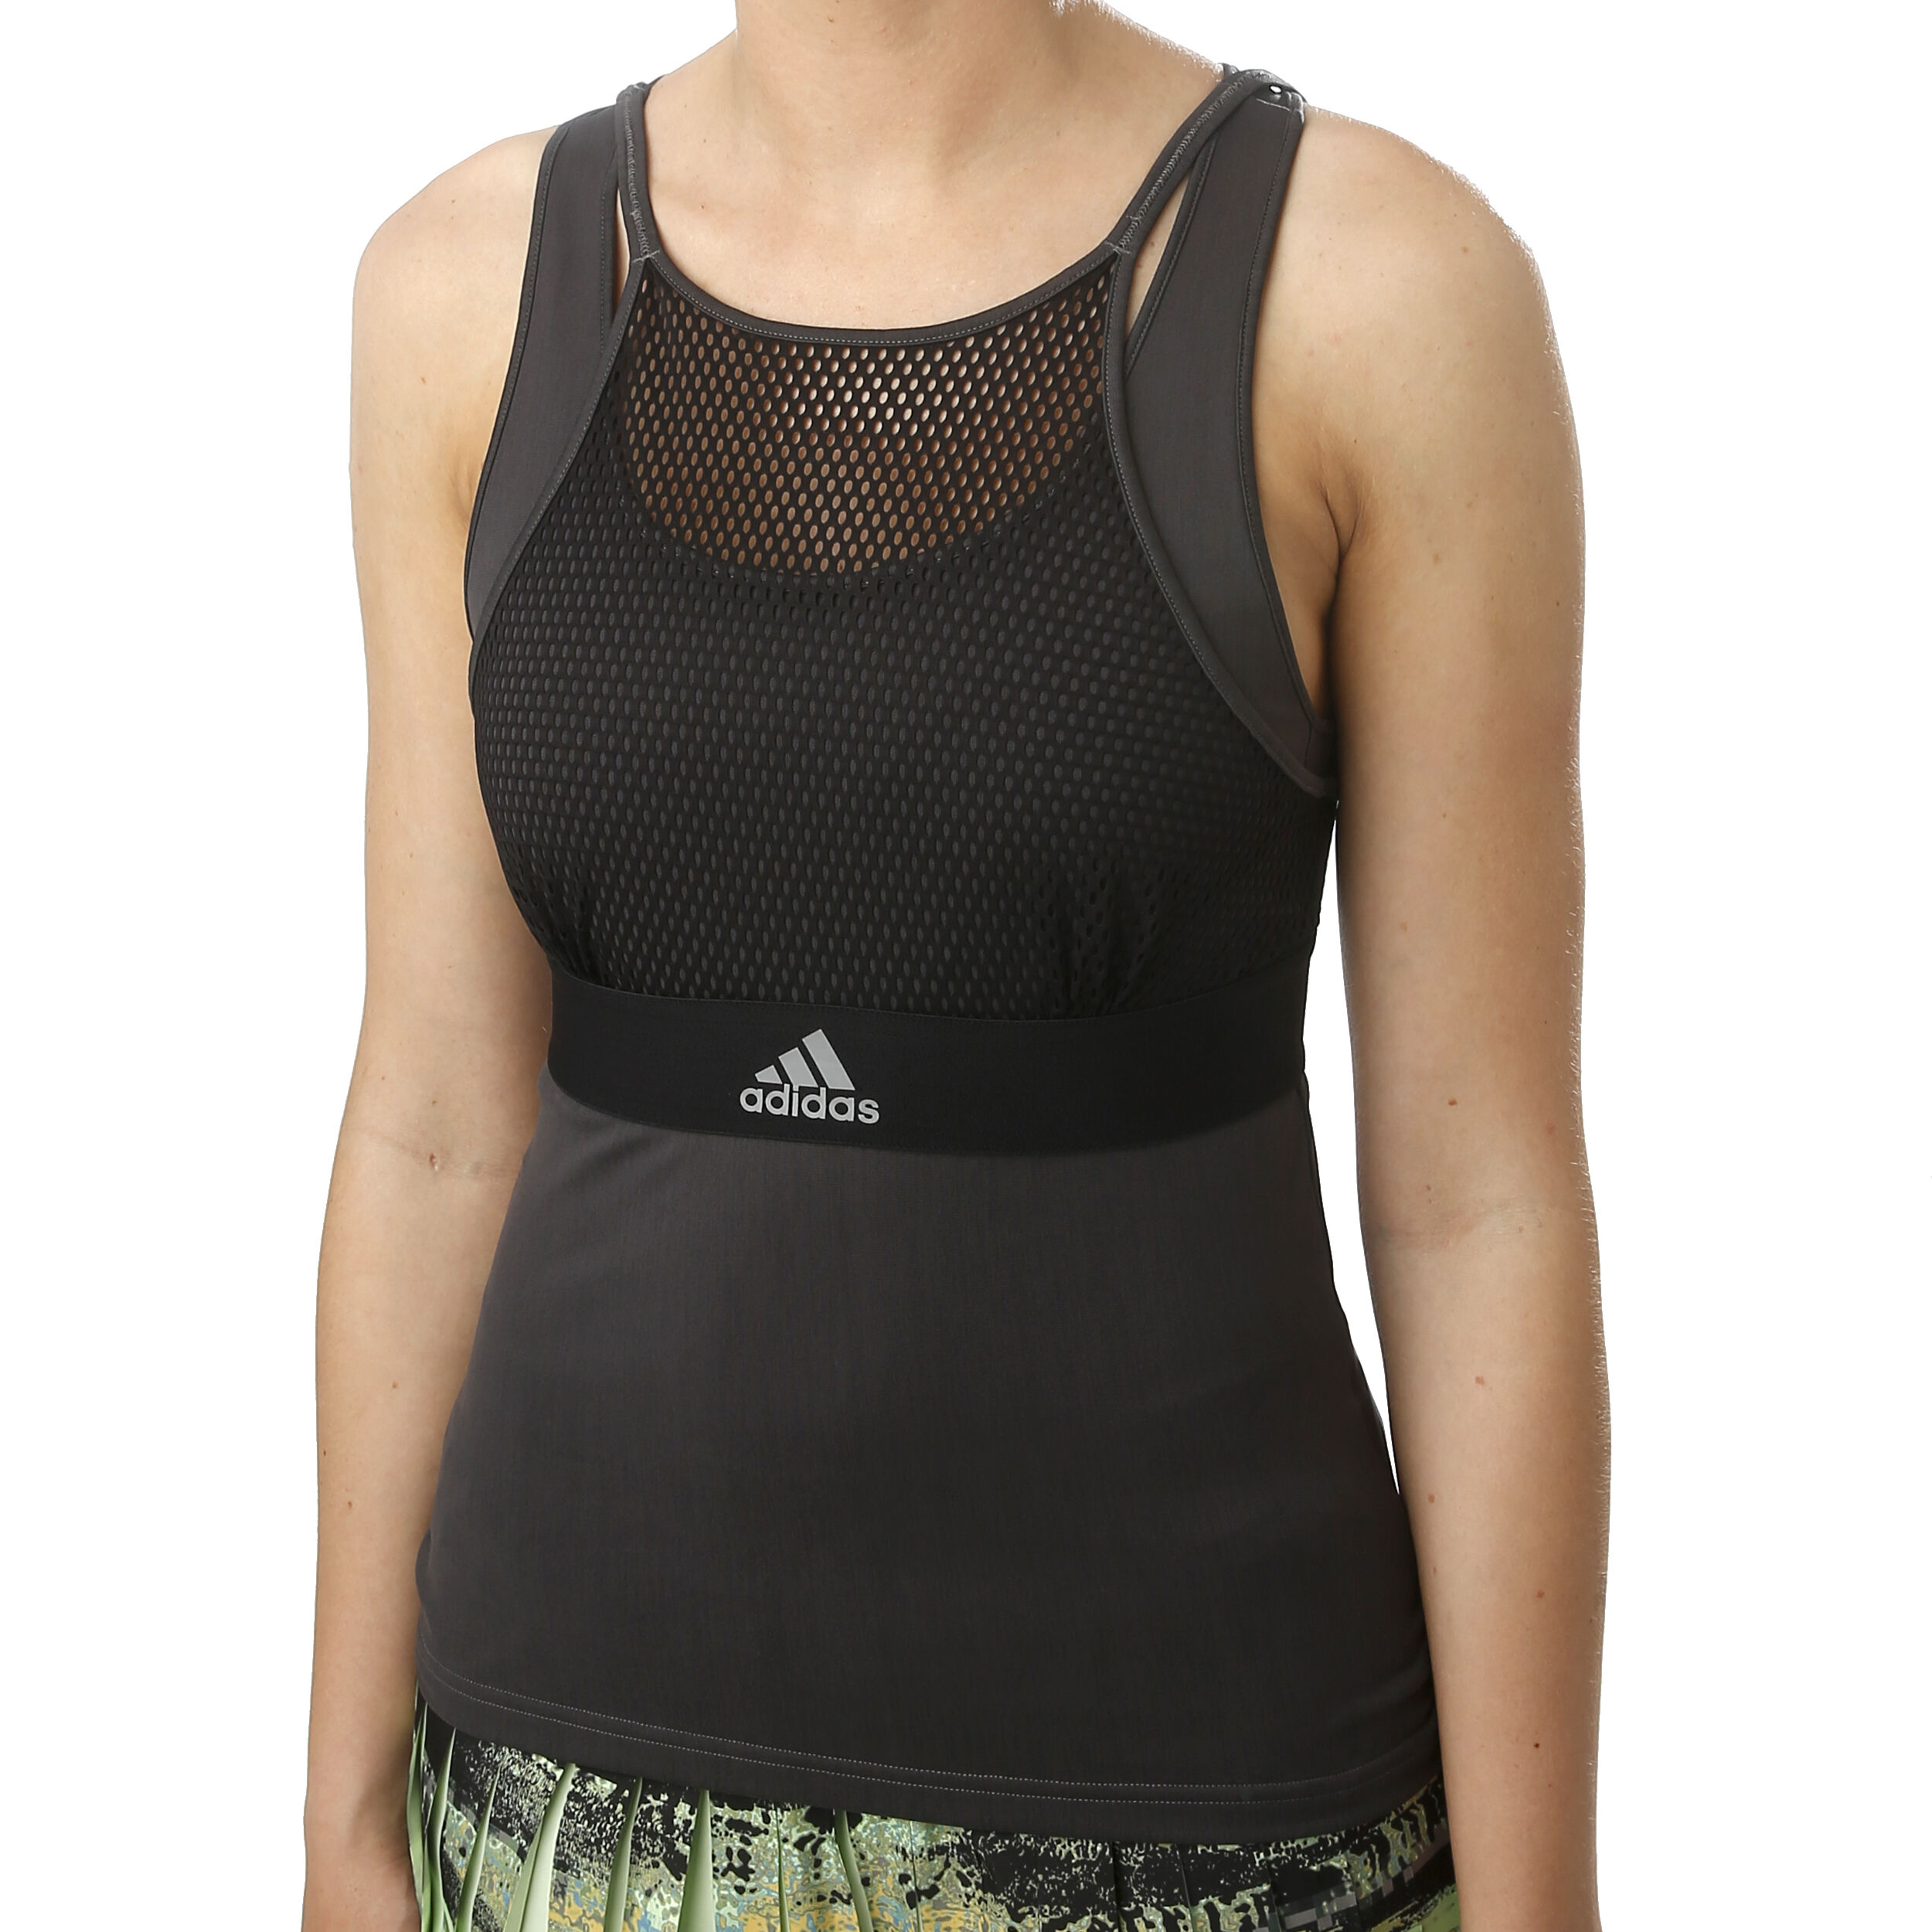 Adidas New York Women's Tank Top, Size L in Black, Size L in